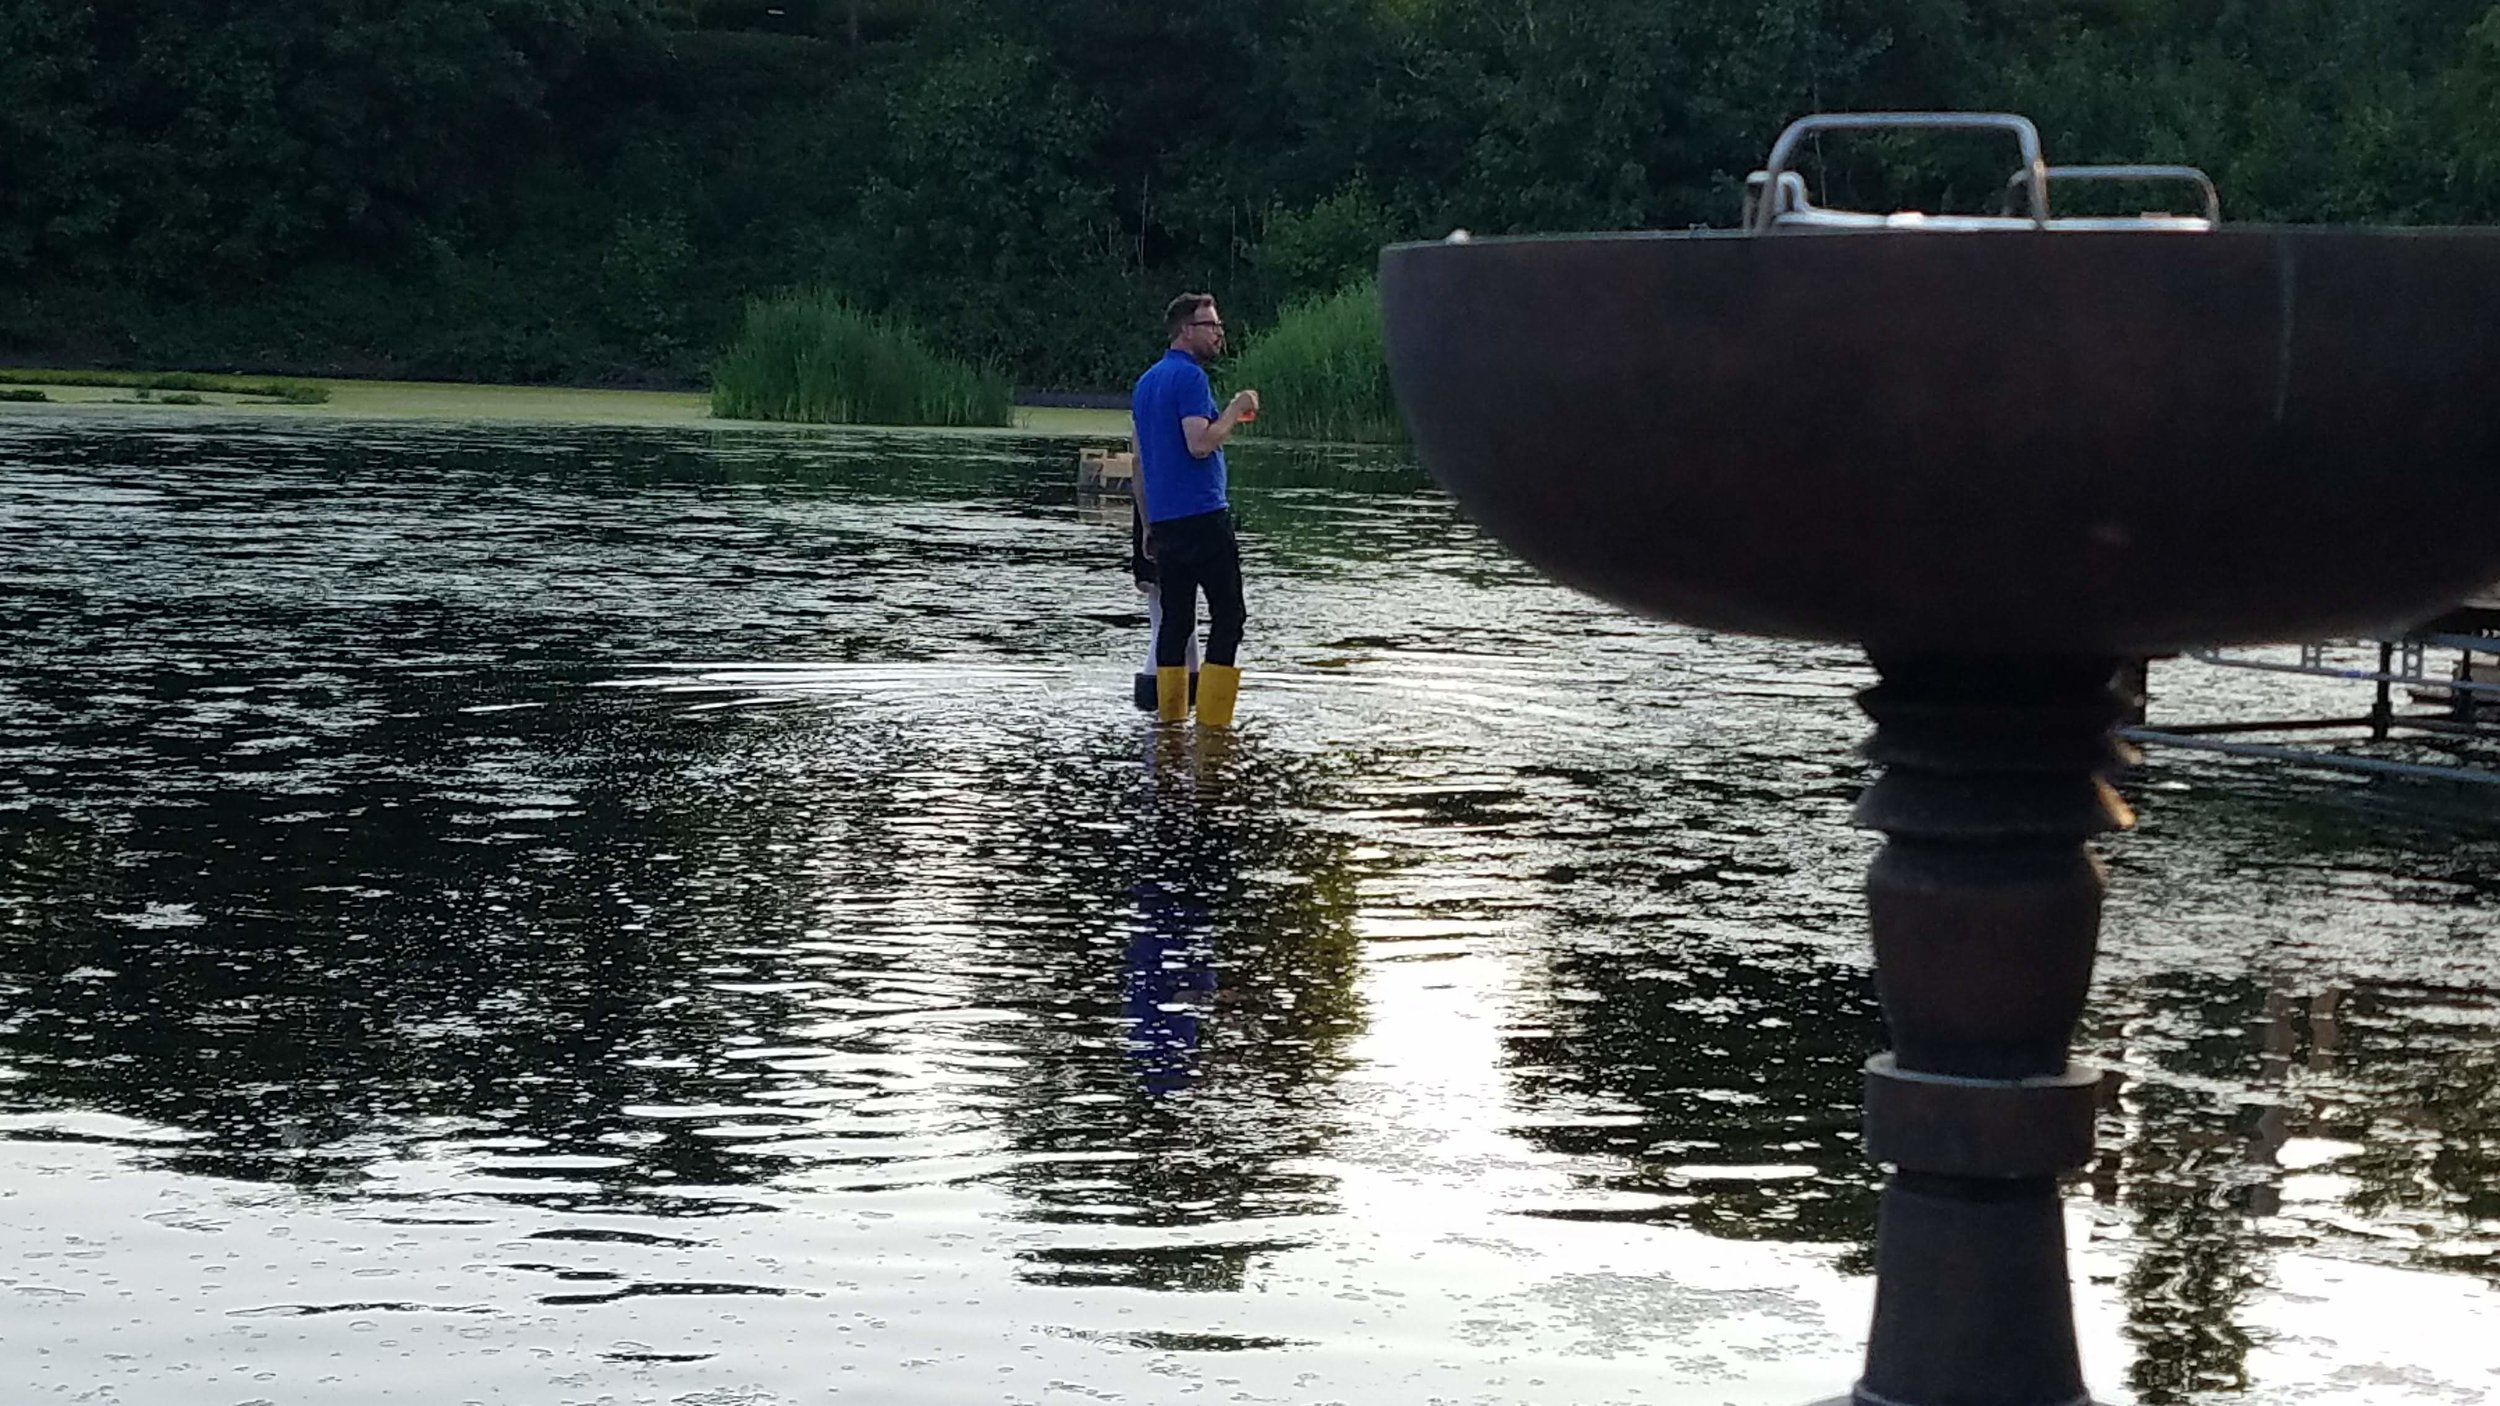 Markus Bader, out for a walk. The water around the Floating University is very shallow - after some rain, maybe six inches. Whenever it is time to have a conversation, you can simply pull on a pair of fishing boots, and start doing laps around the reservoir.